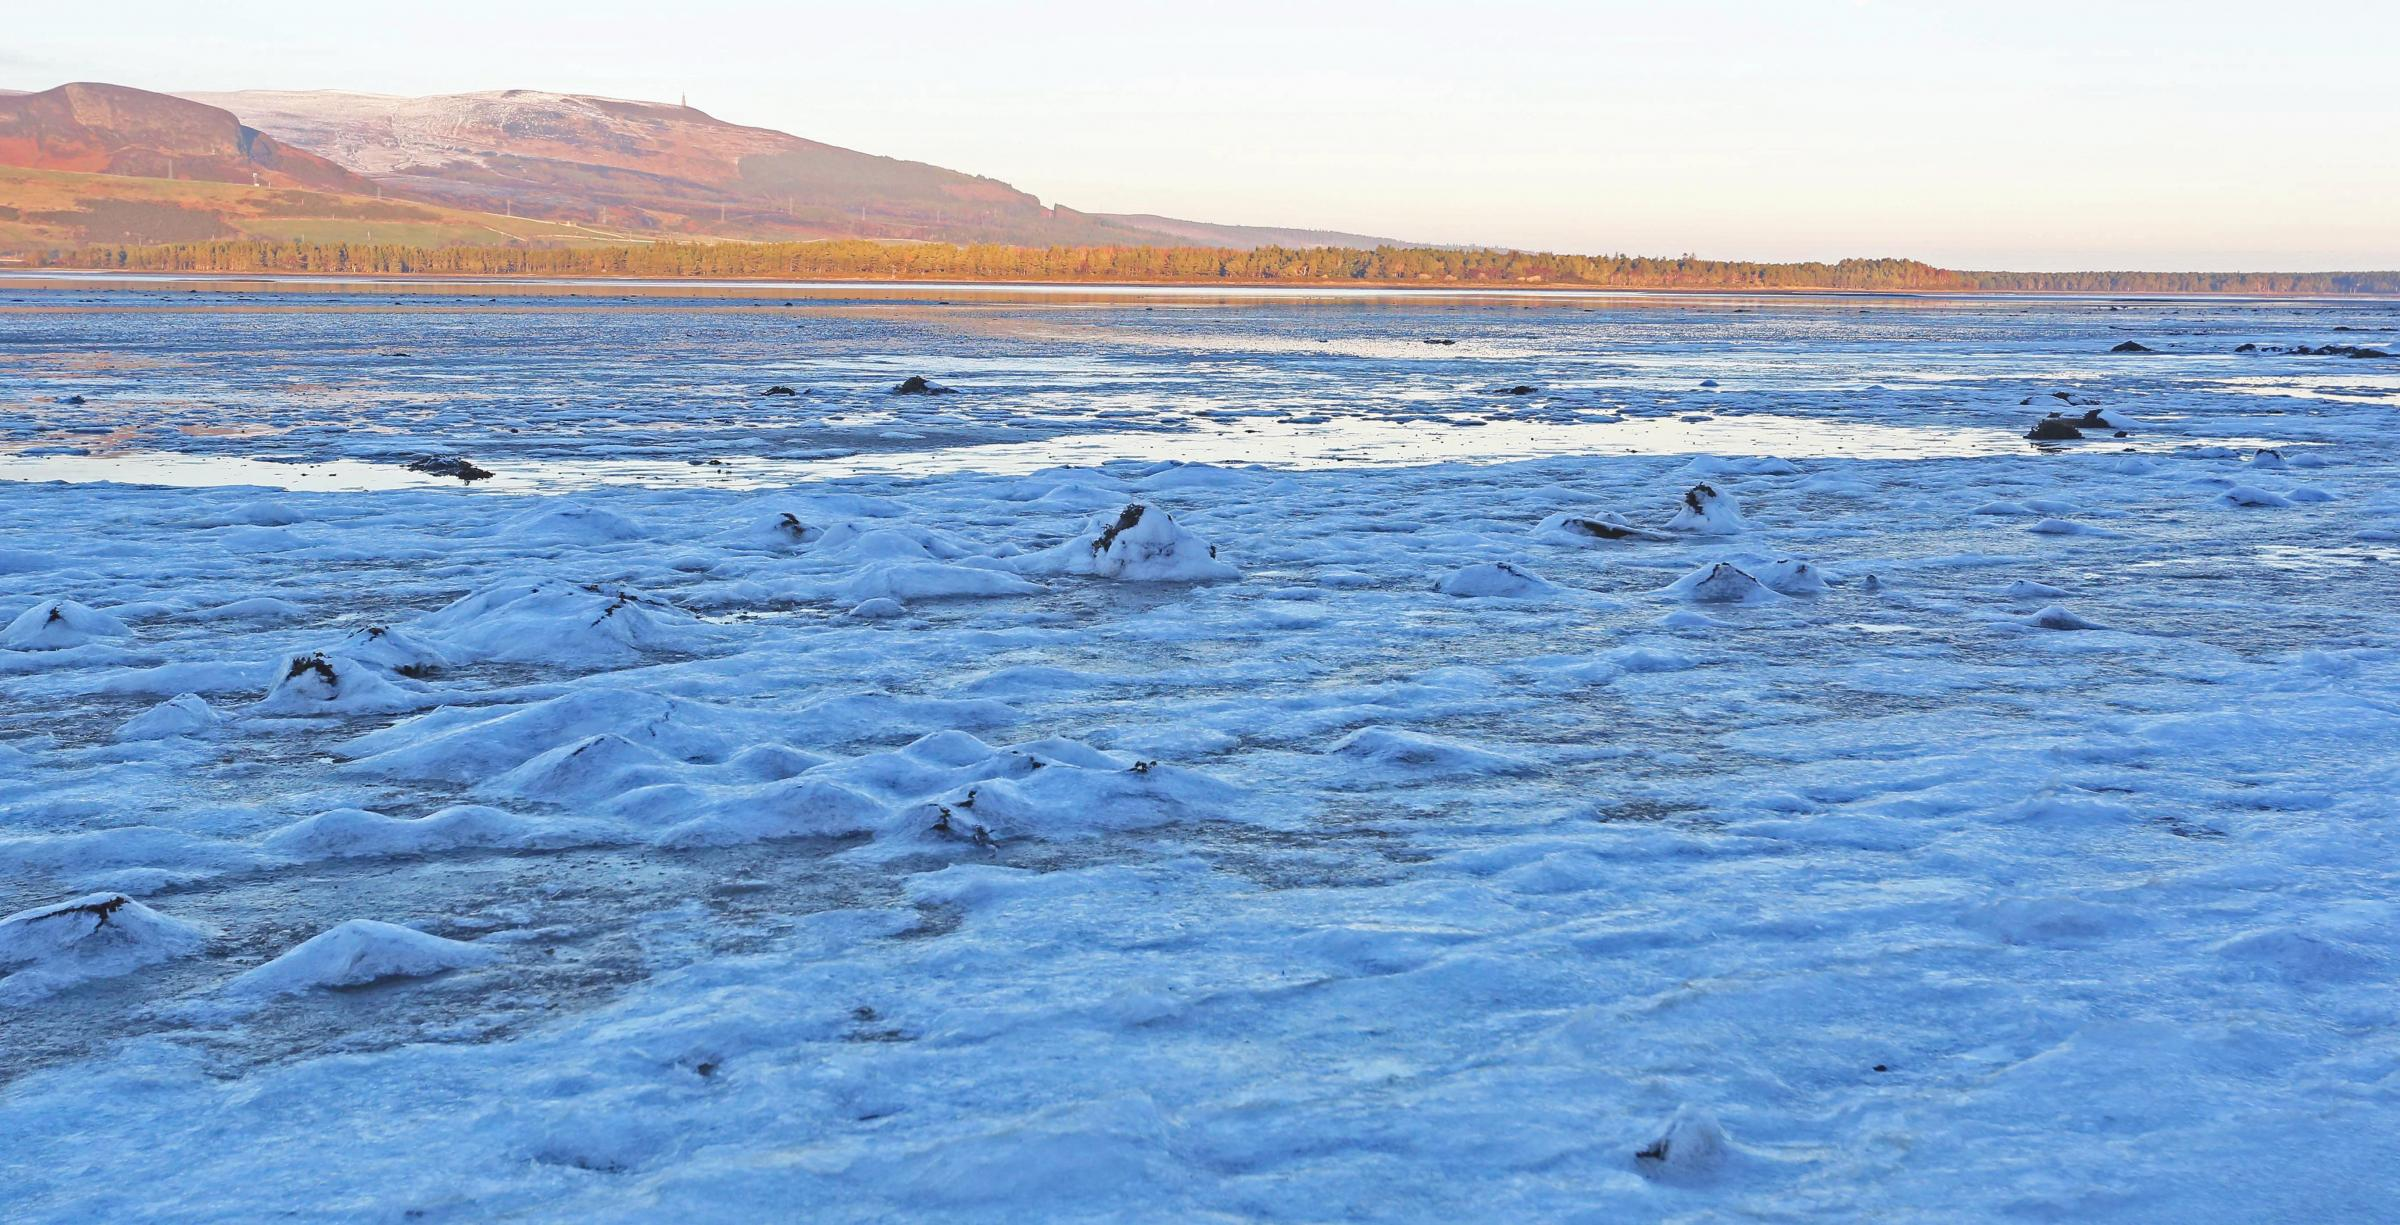 Highland loch freezes over as temperatures drop to -8 degrees